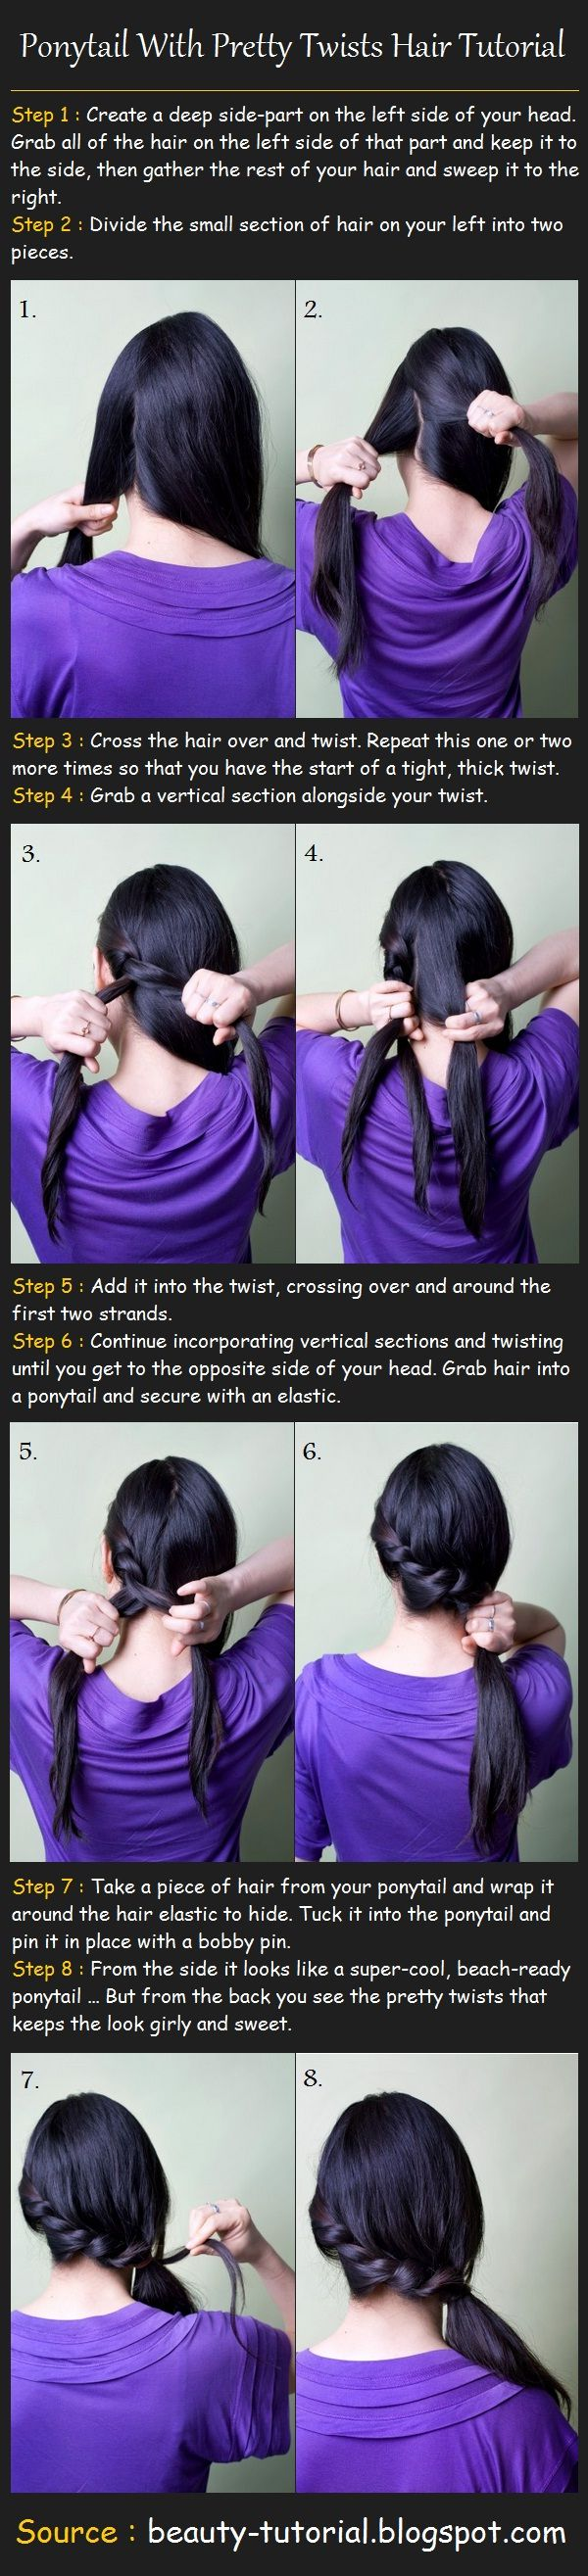 Ponytail With Twists Hair TutorialHair Tutorials, Beautiful Tutorials, Long Hair, Twists Ponytail, Twists Hair, Twist Hair, Hair Style, Side Ponytail, Ponies Tail